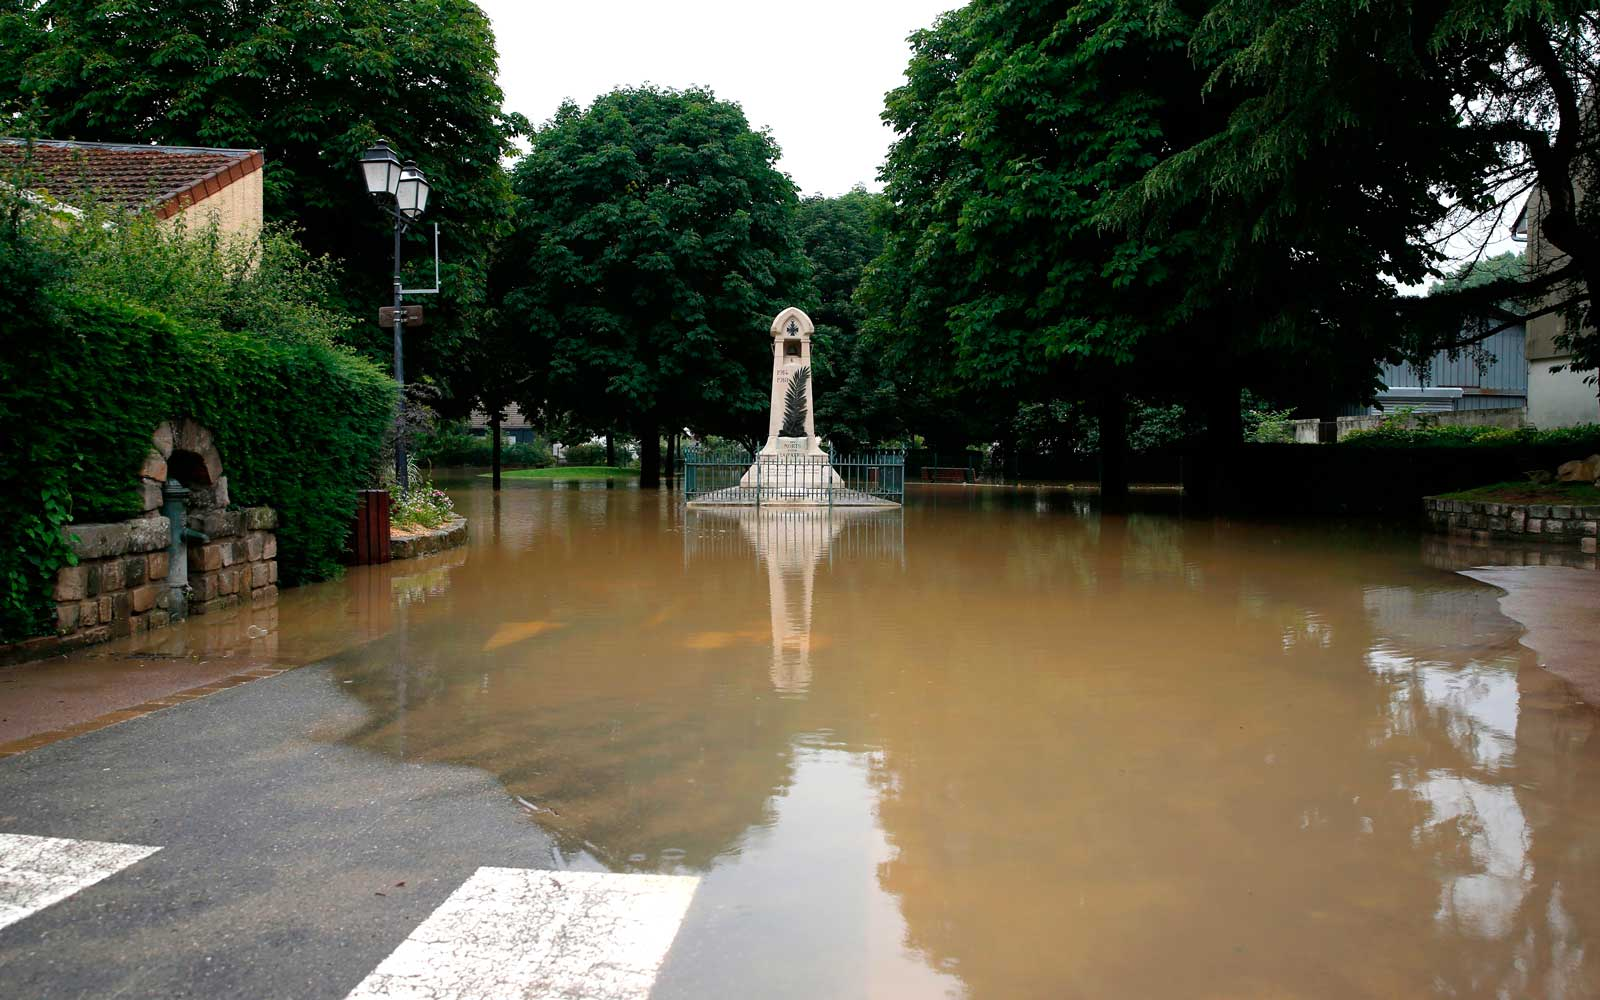 June 12, 2018 in Saint-Remy-les-Chevreuse shows a flooded street following heavy rains.